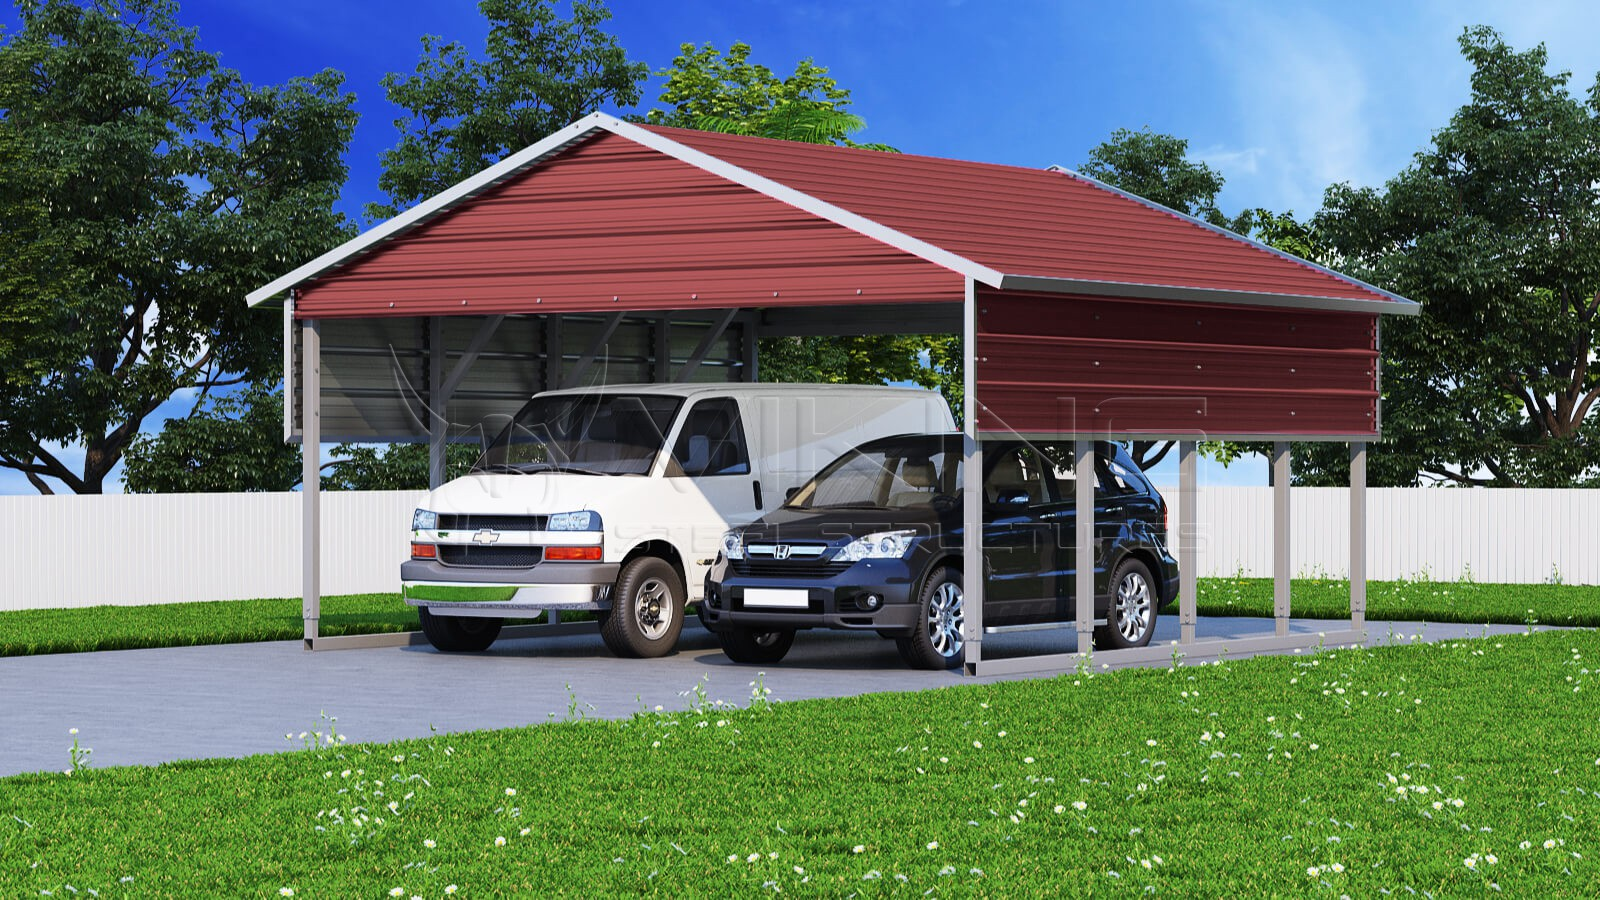 22x21-two-car-steel-carport-right-barn-red-image